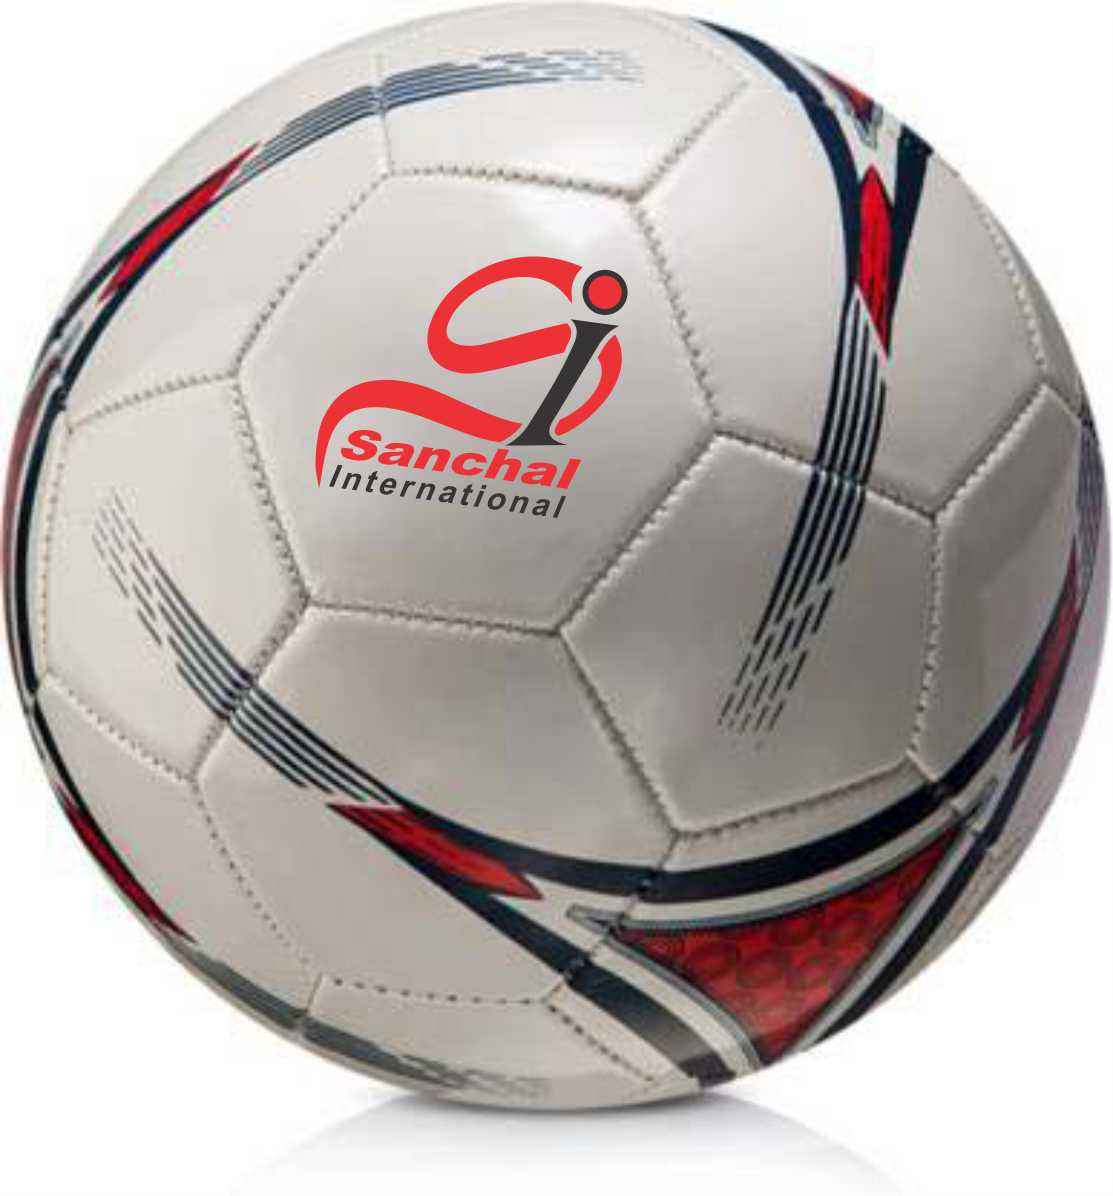 Match Soccer Ball / Cheap Price with High Quality